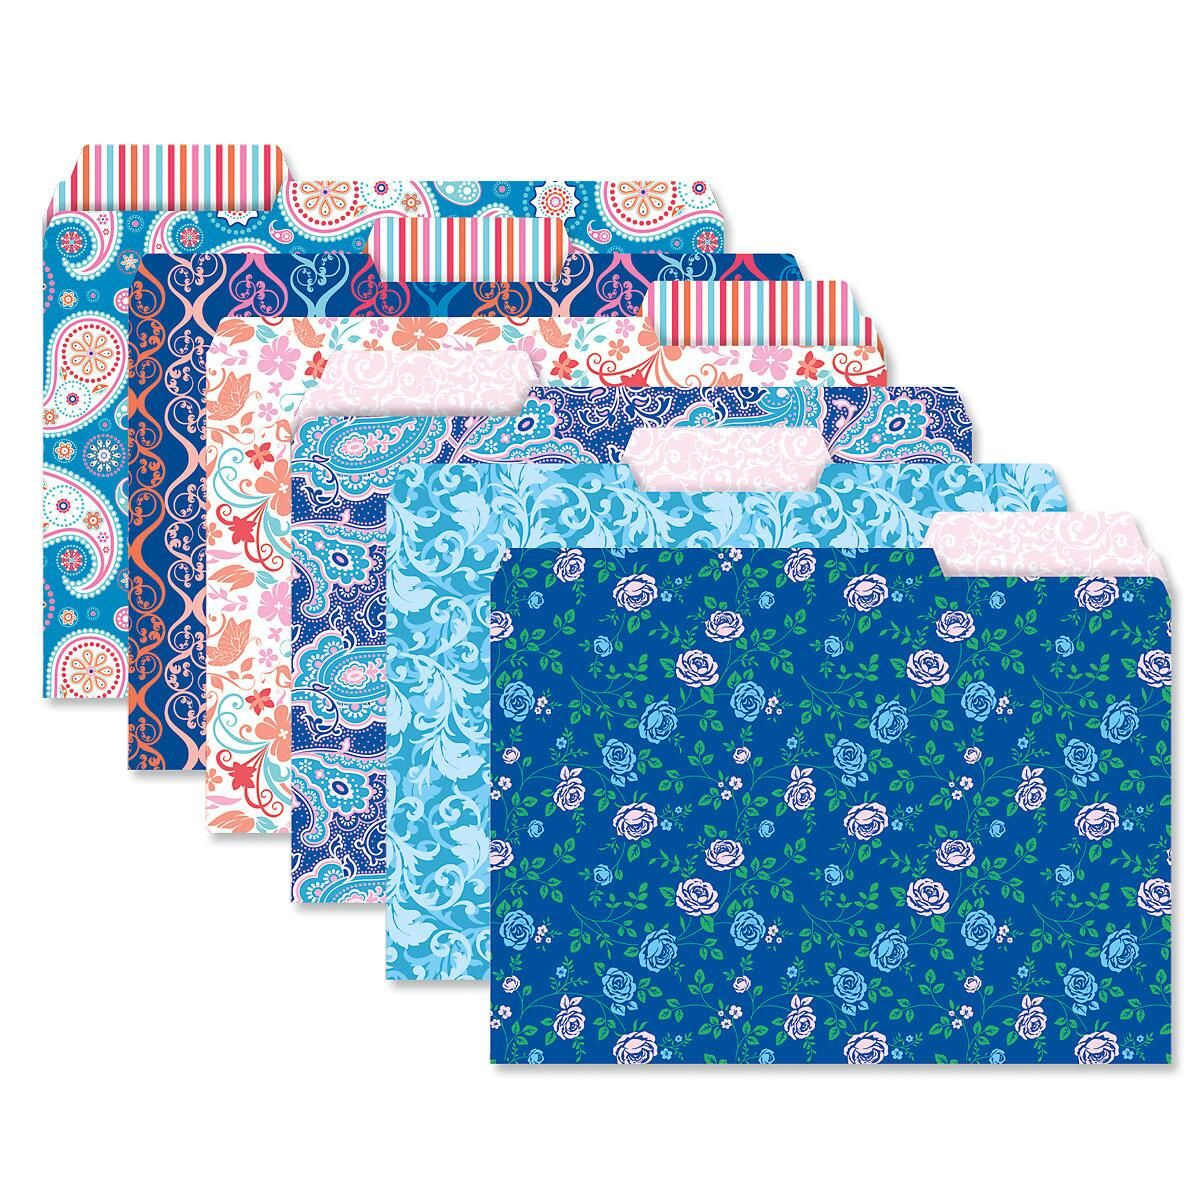 Floral and Paisley File Folder